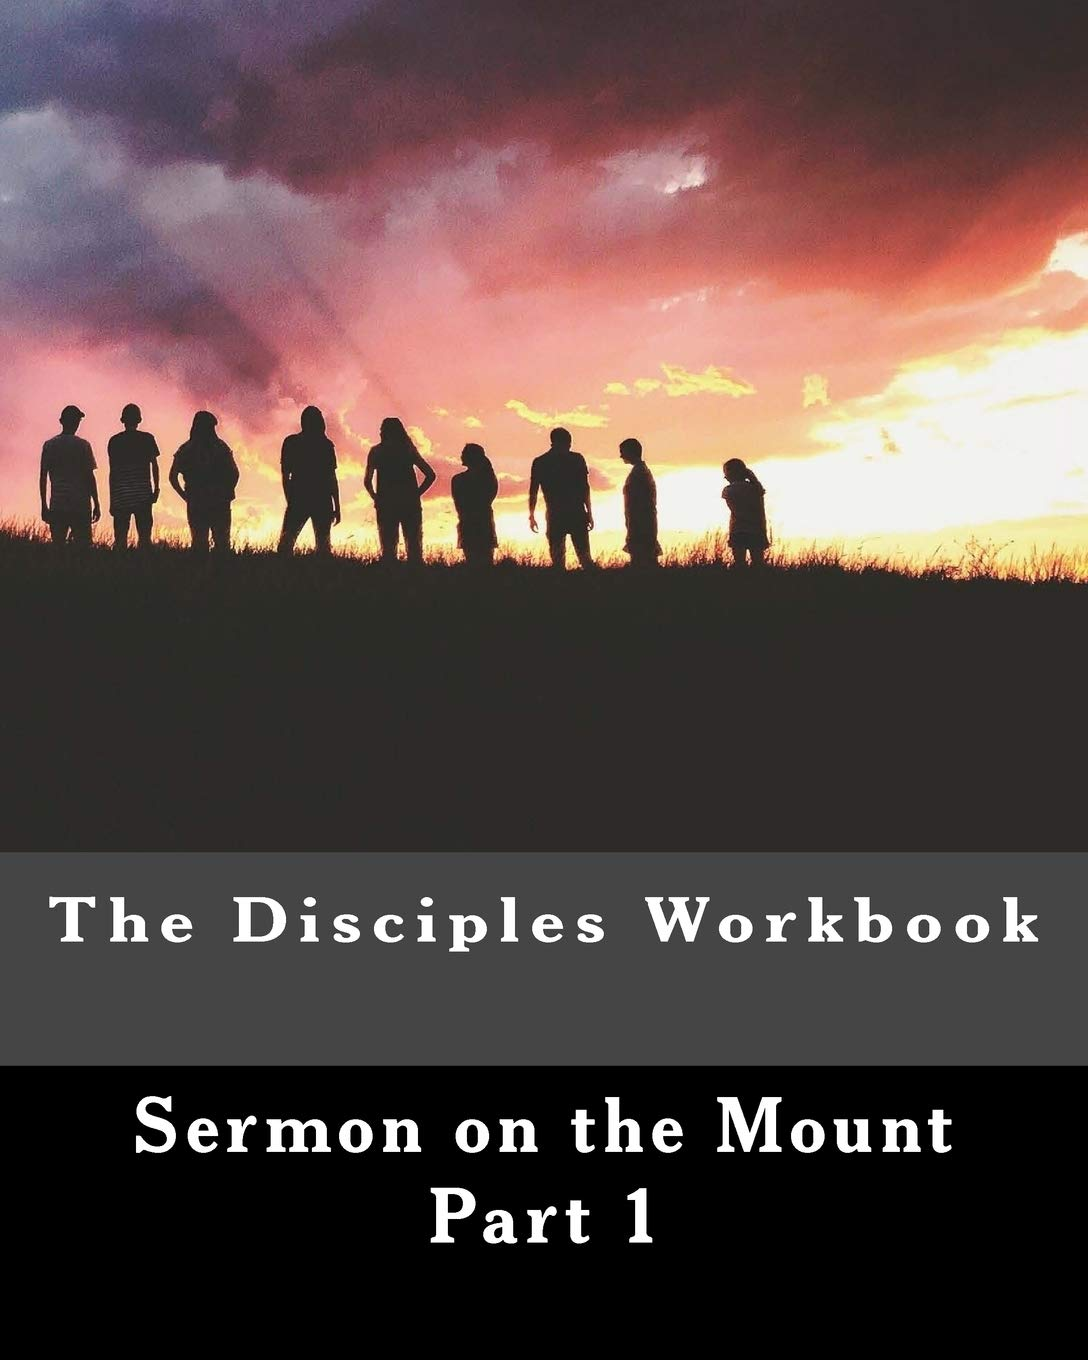 The Disciples Workbook: Sermon on the Mount Part 1: C S Areson